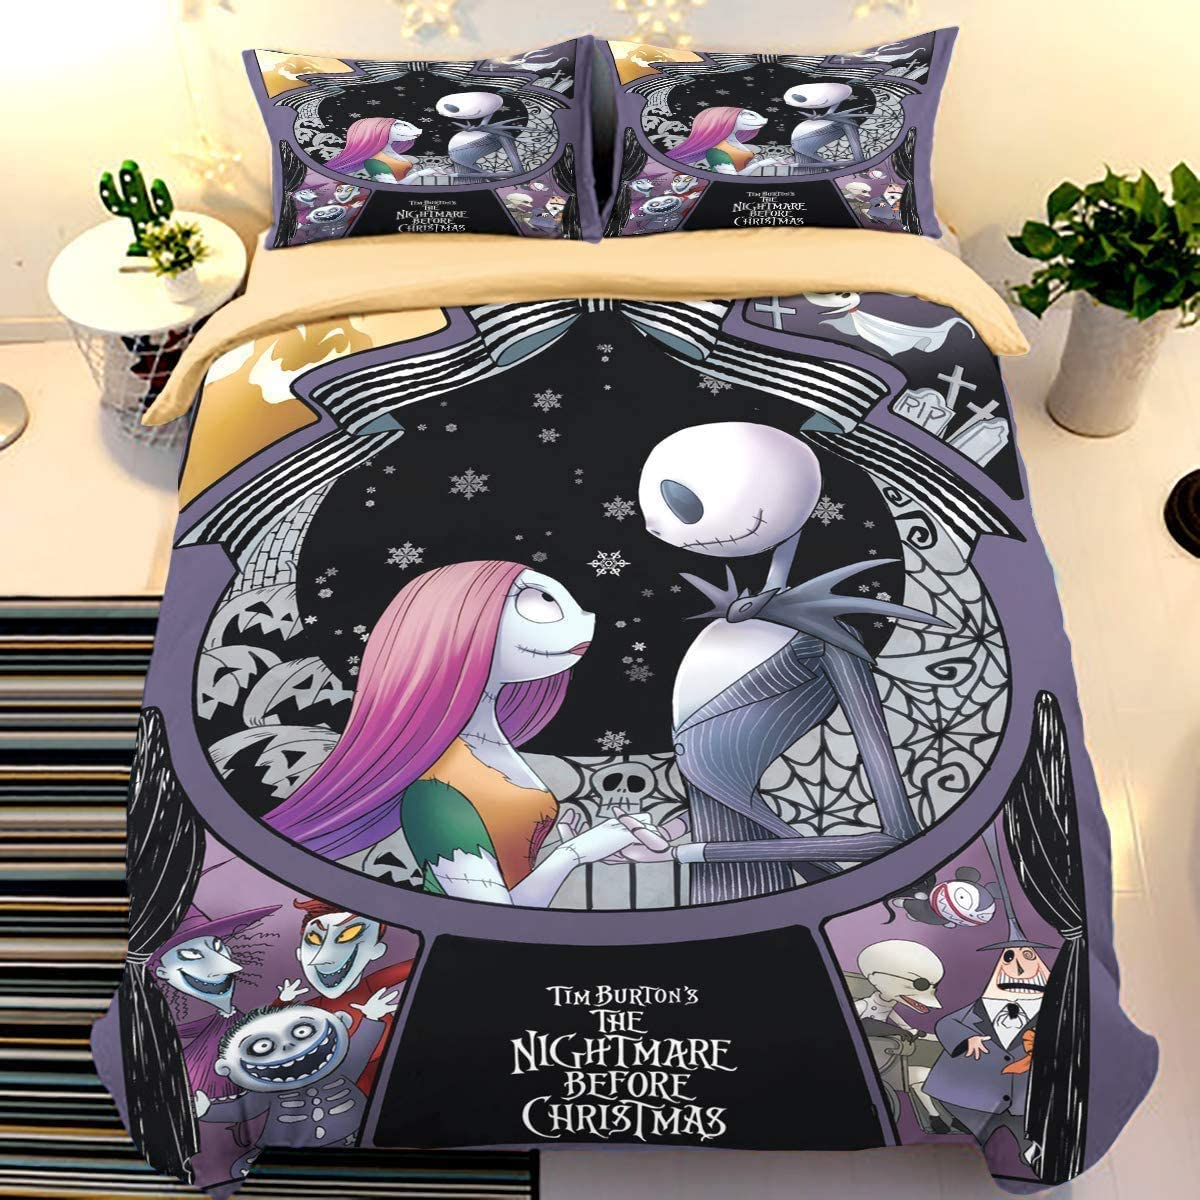 Vanson Nightmare Before Christmas Duvet Cover Set 3 Albuquerque Mall P Fashion Pcs with 2